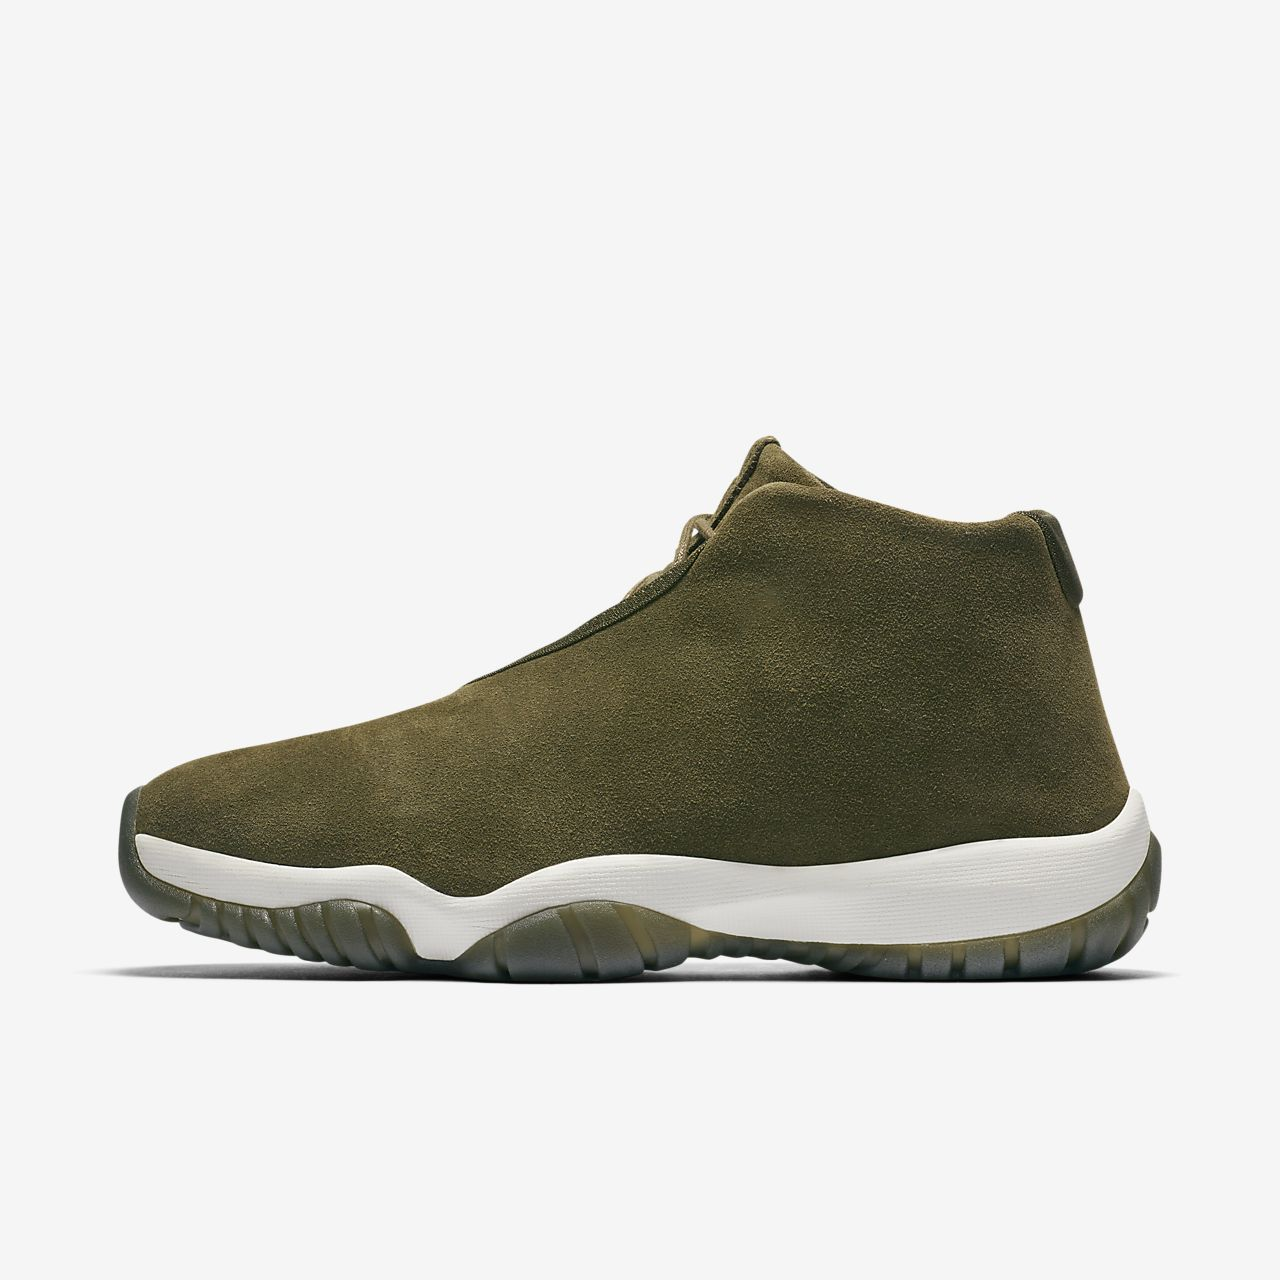 détaillant en ligne e6a5e e601e Air Jordan Future Women's Shoe